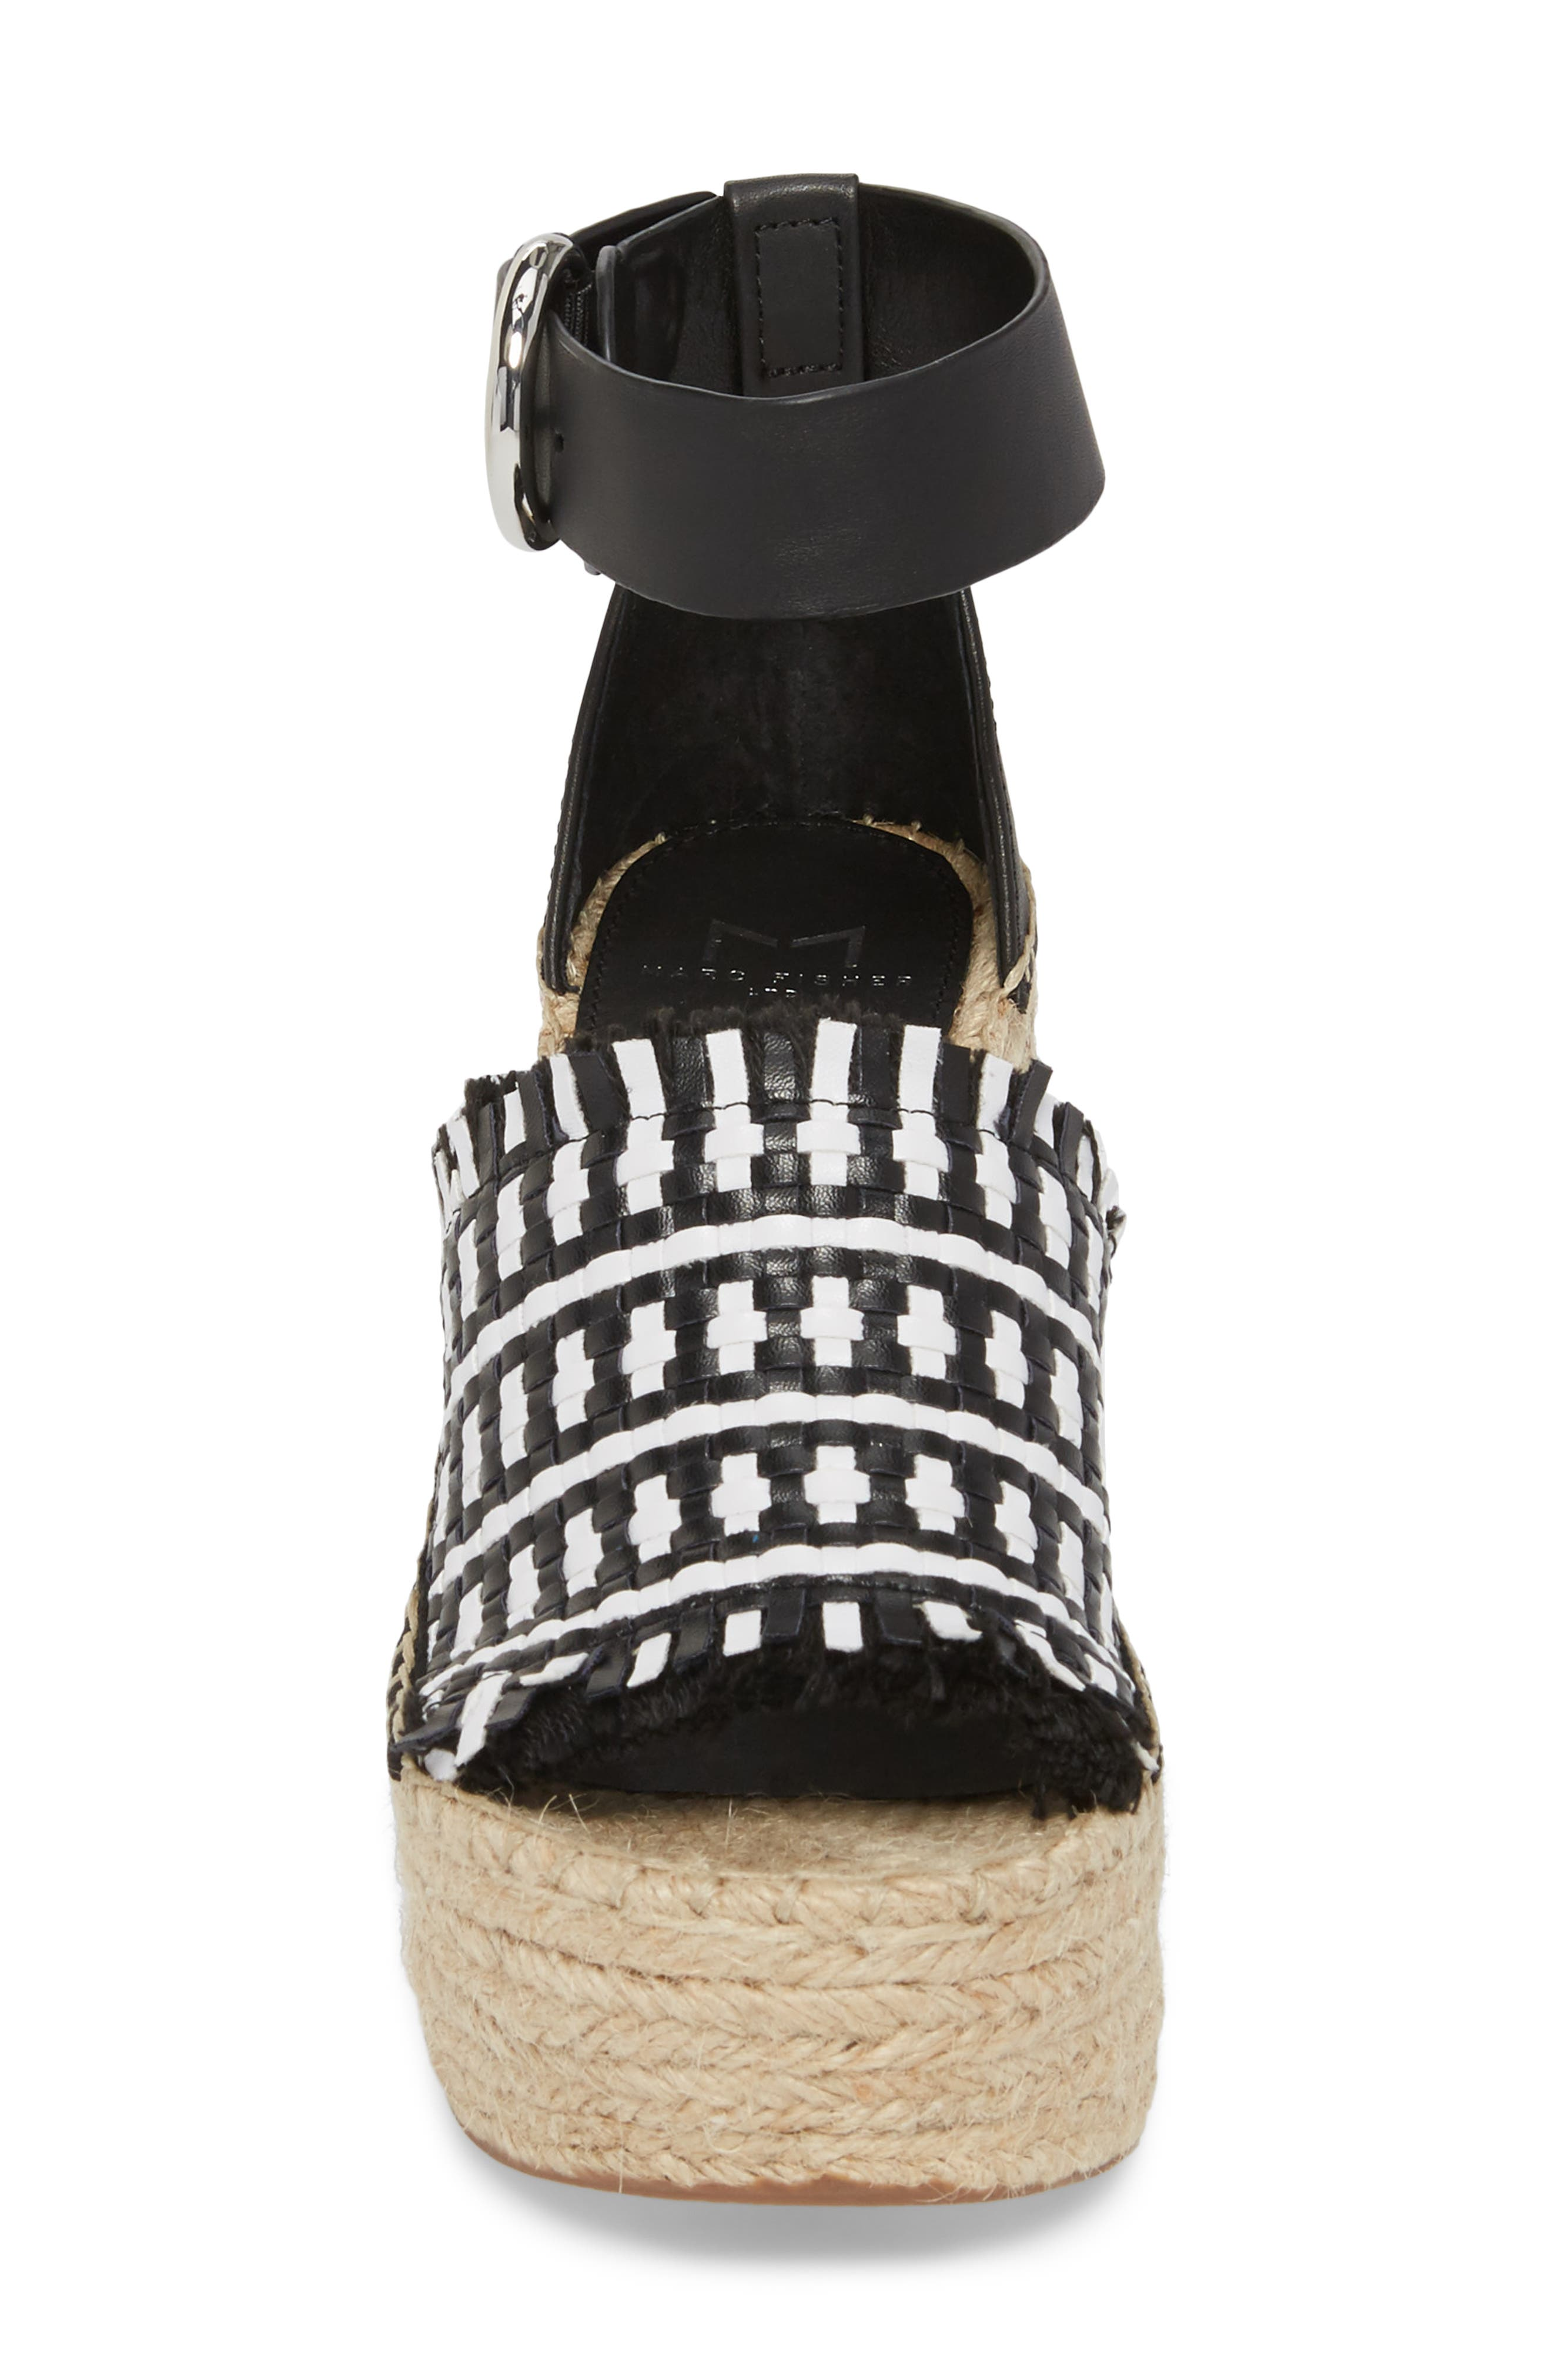 Andrew Espadrille Wedge Sandal,                             Alternate thumbnail 4, color,                             White/ Black Leather